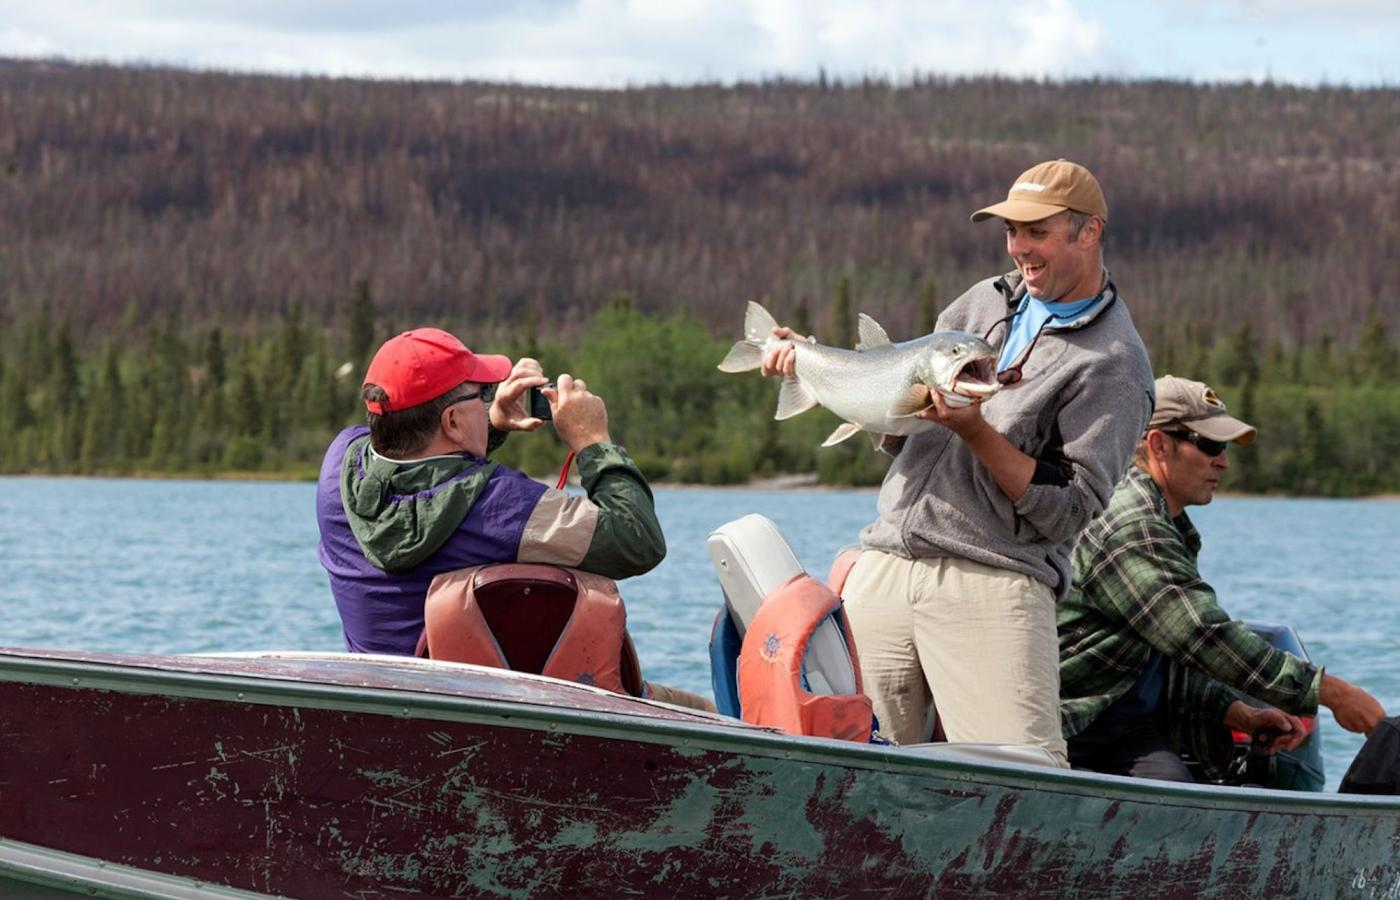 Lake fishing at the lake fishing lodge in the summer catching trout, grayling, pike, arctic char